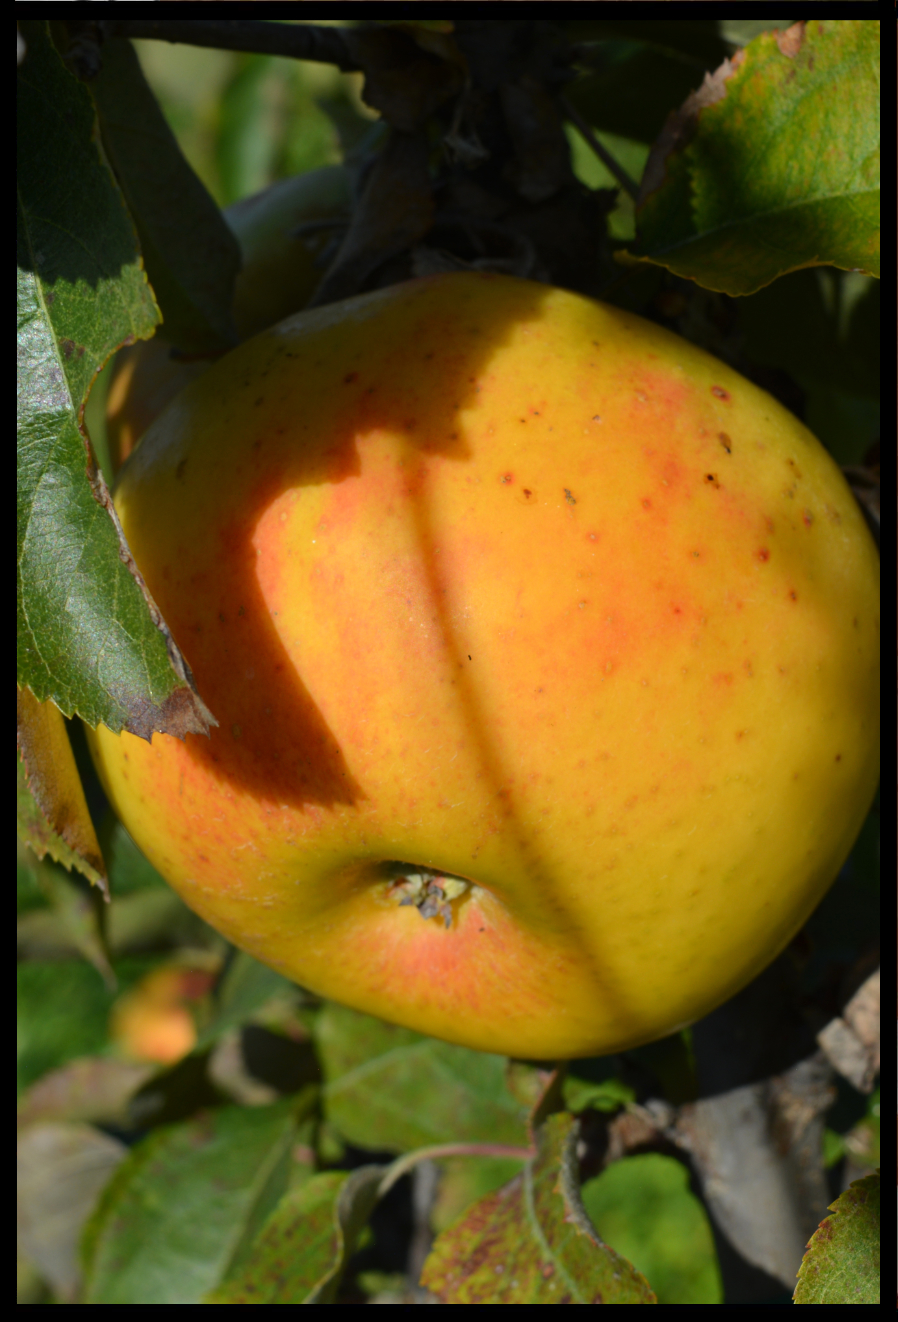 yellow apple in a tree with an orangish red blush where the fruit is not protected by leaves